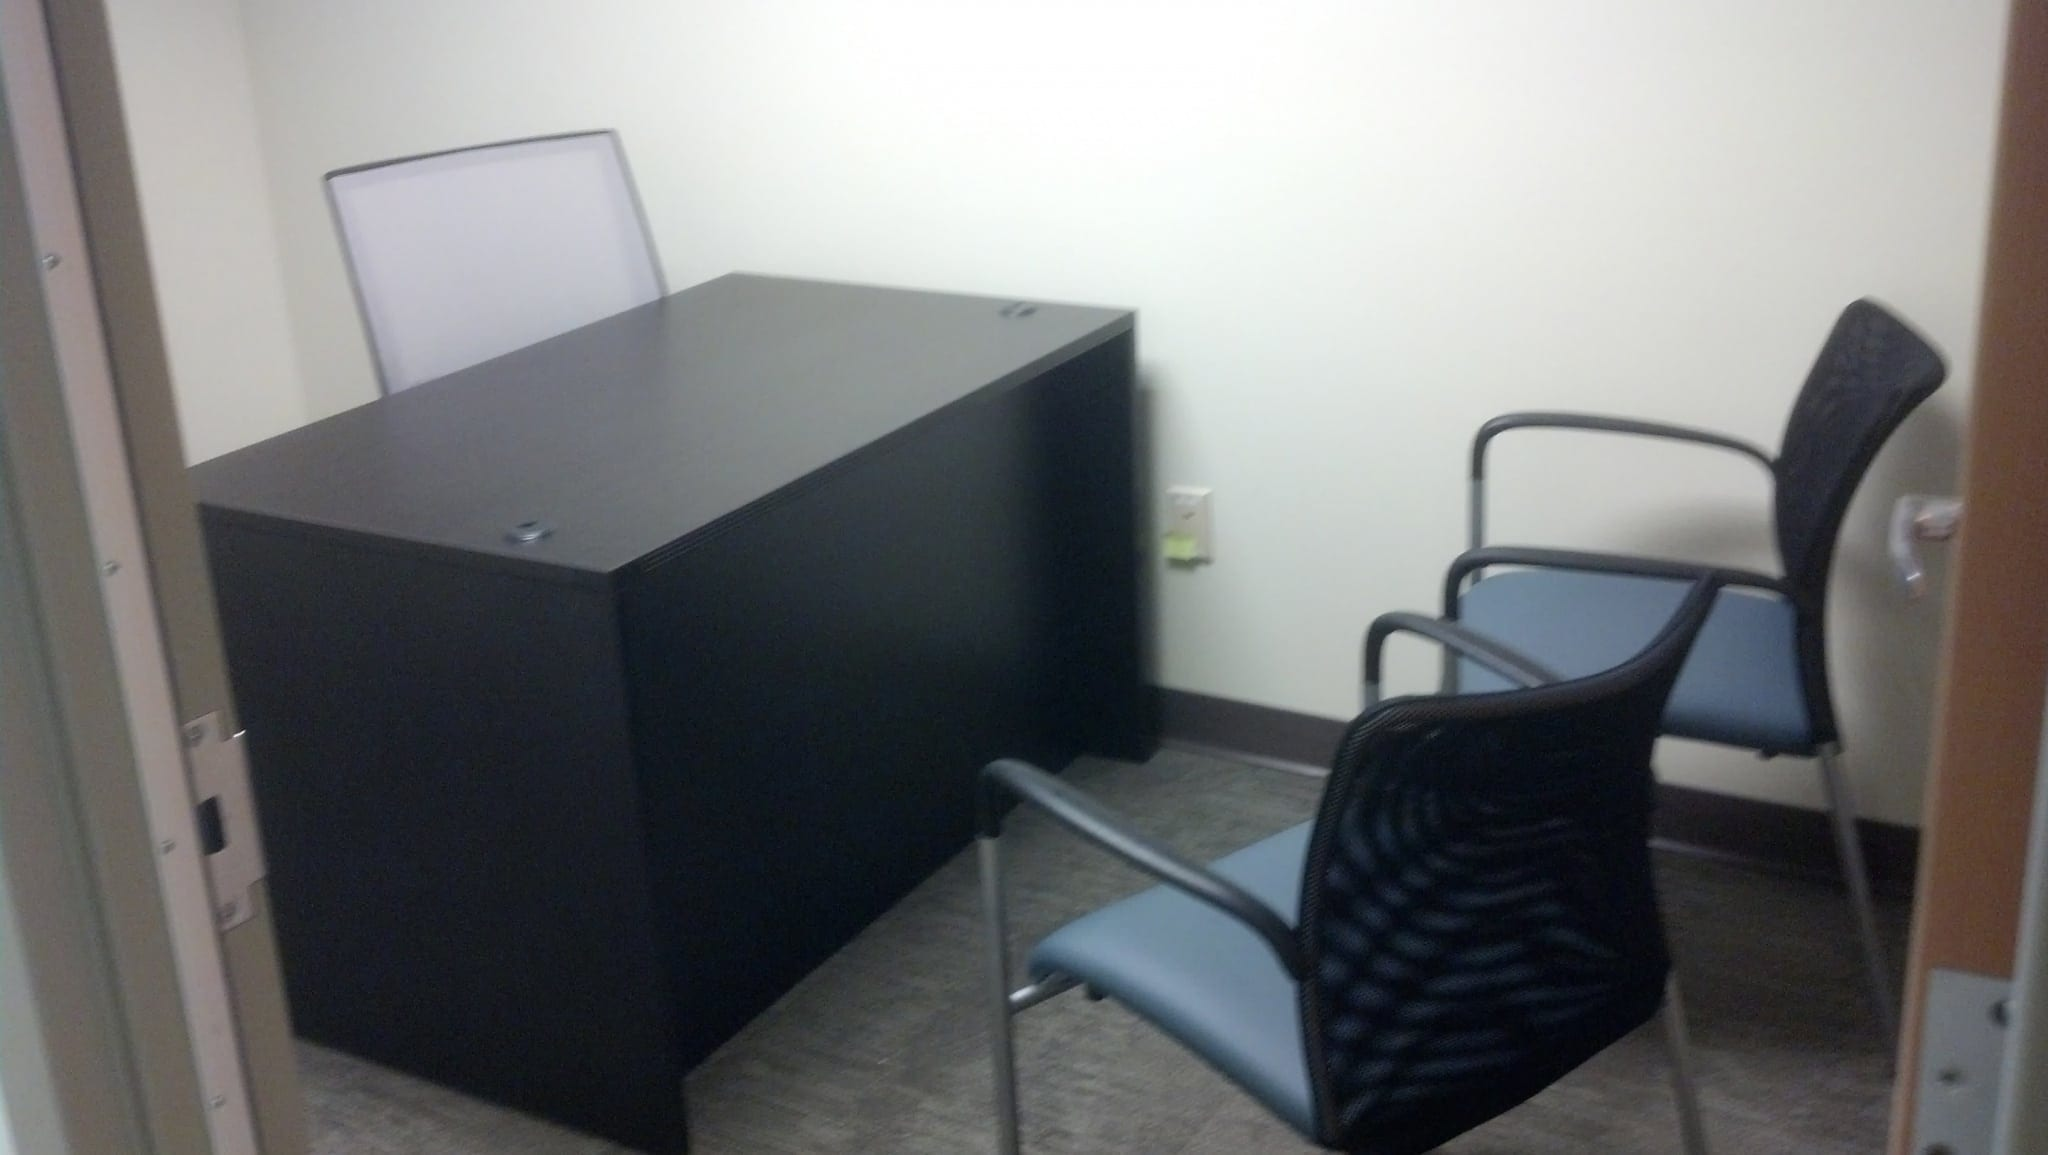 Office Furniture Installation At Surgery Center In Ocala Fl